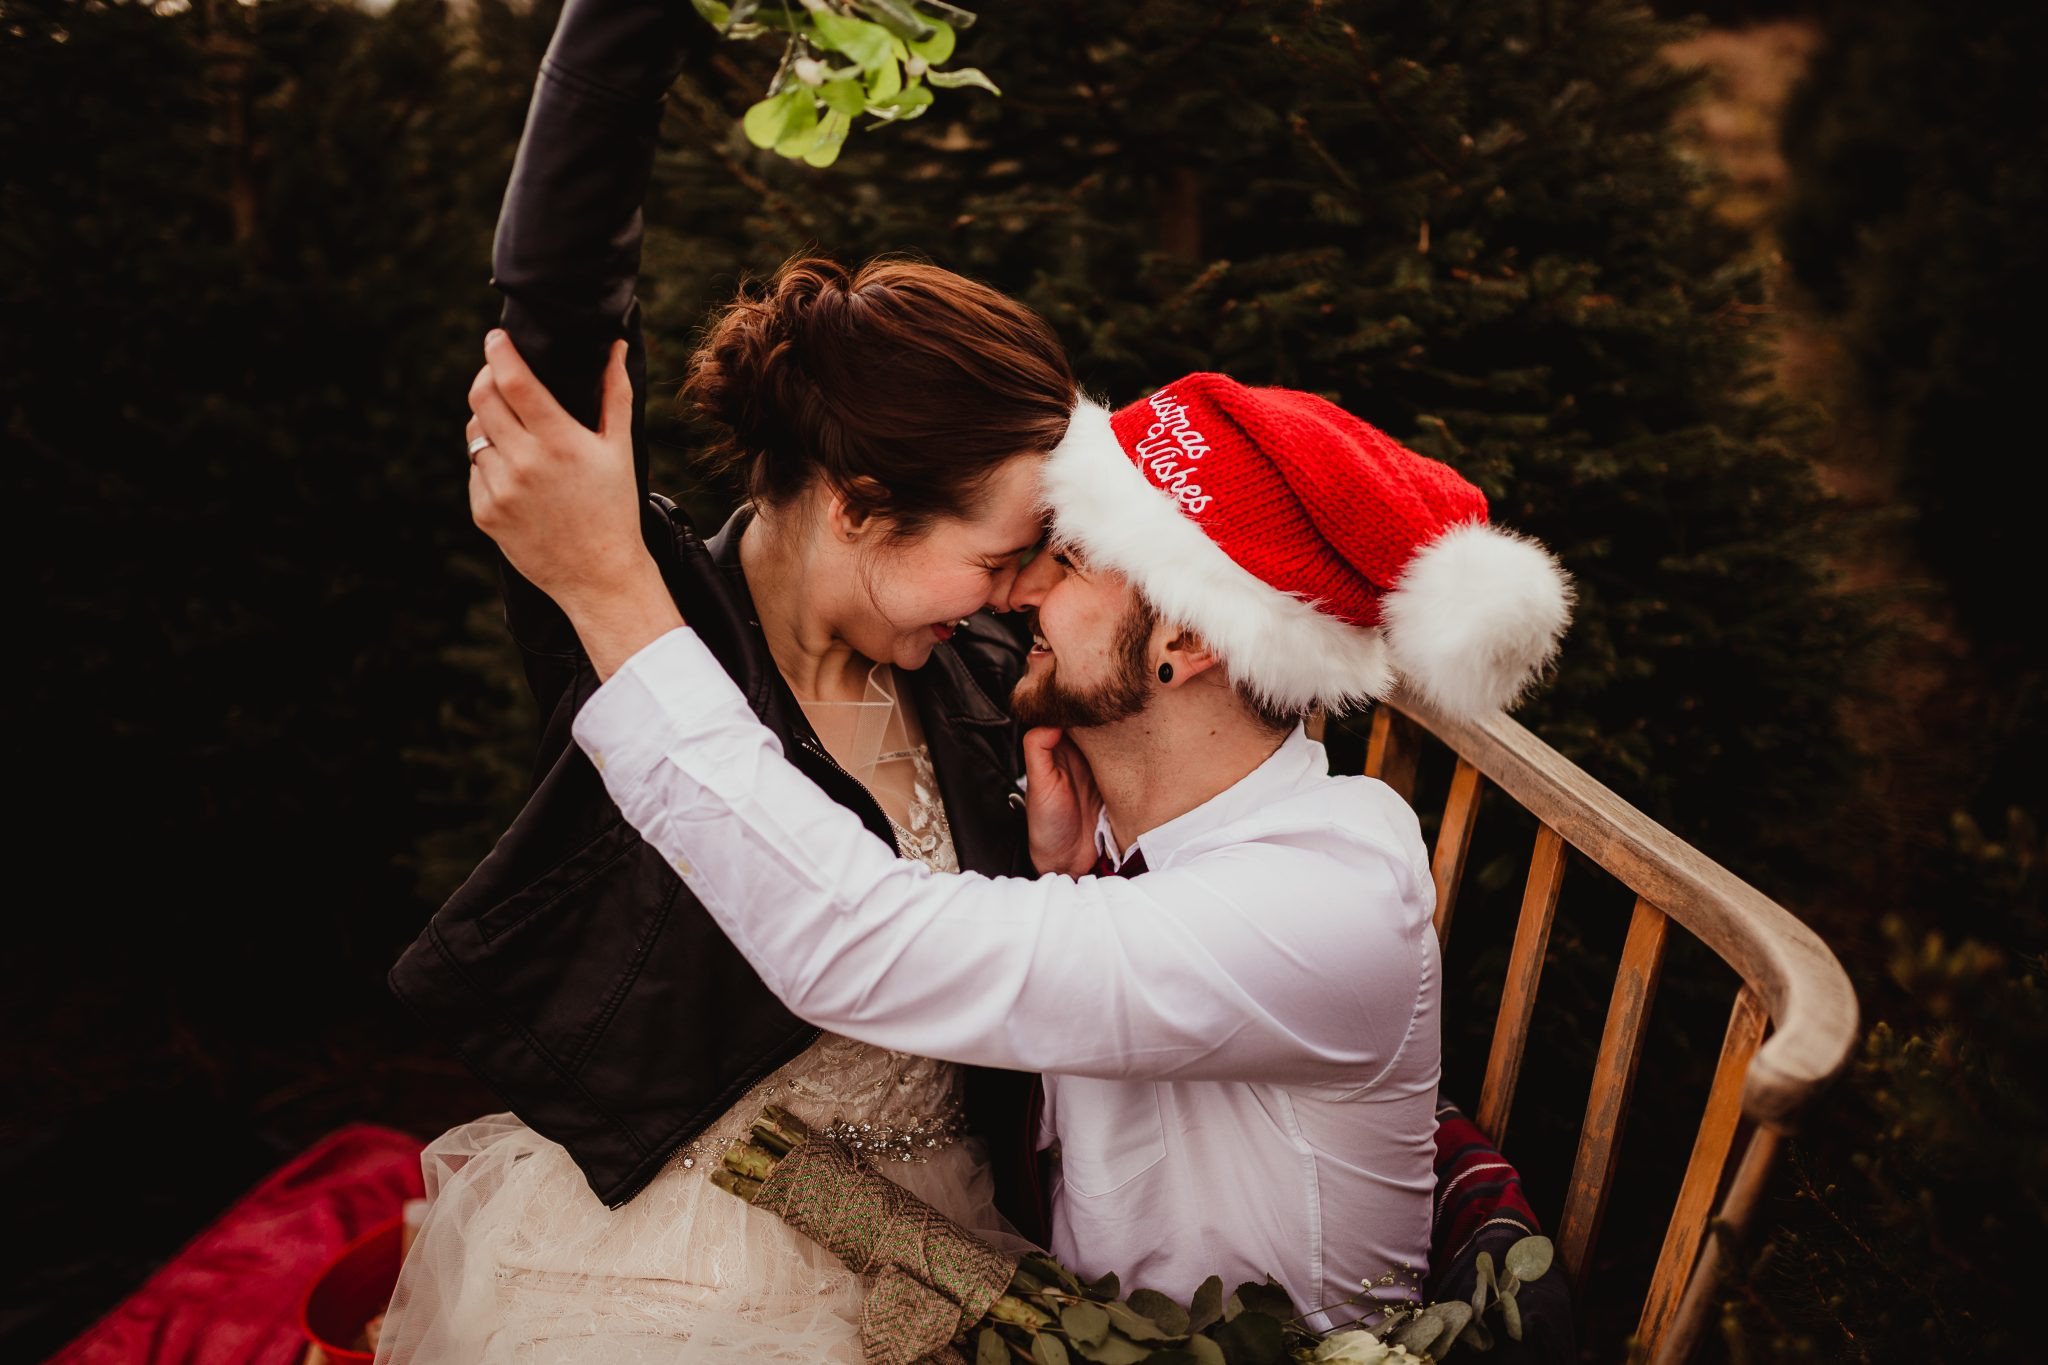 christmas elopement wedding- alternative wedding- christmas wedding- fly on the wall photography- wedding at a christmas tree farm- couple with mistletoe